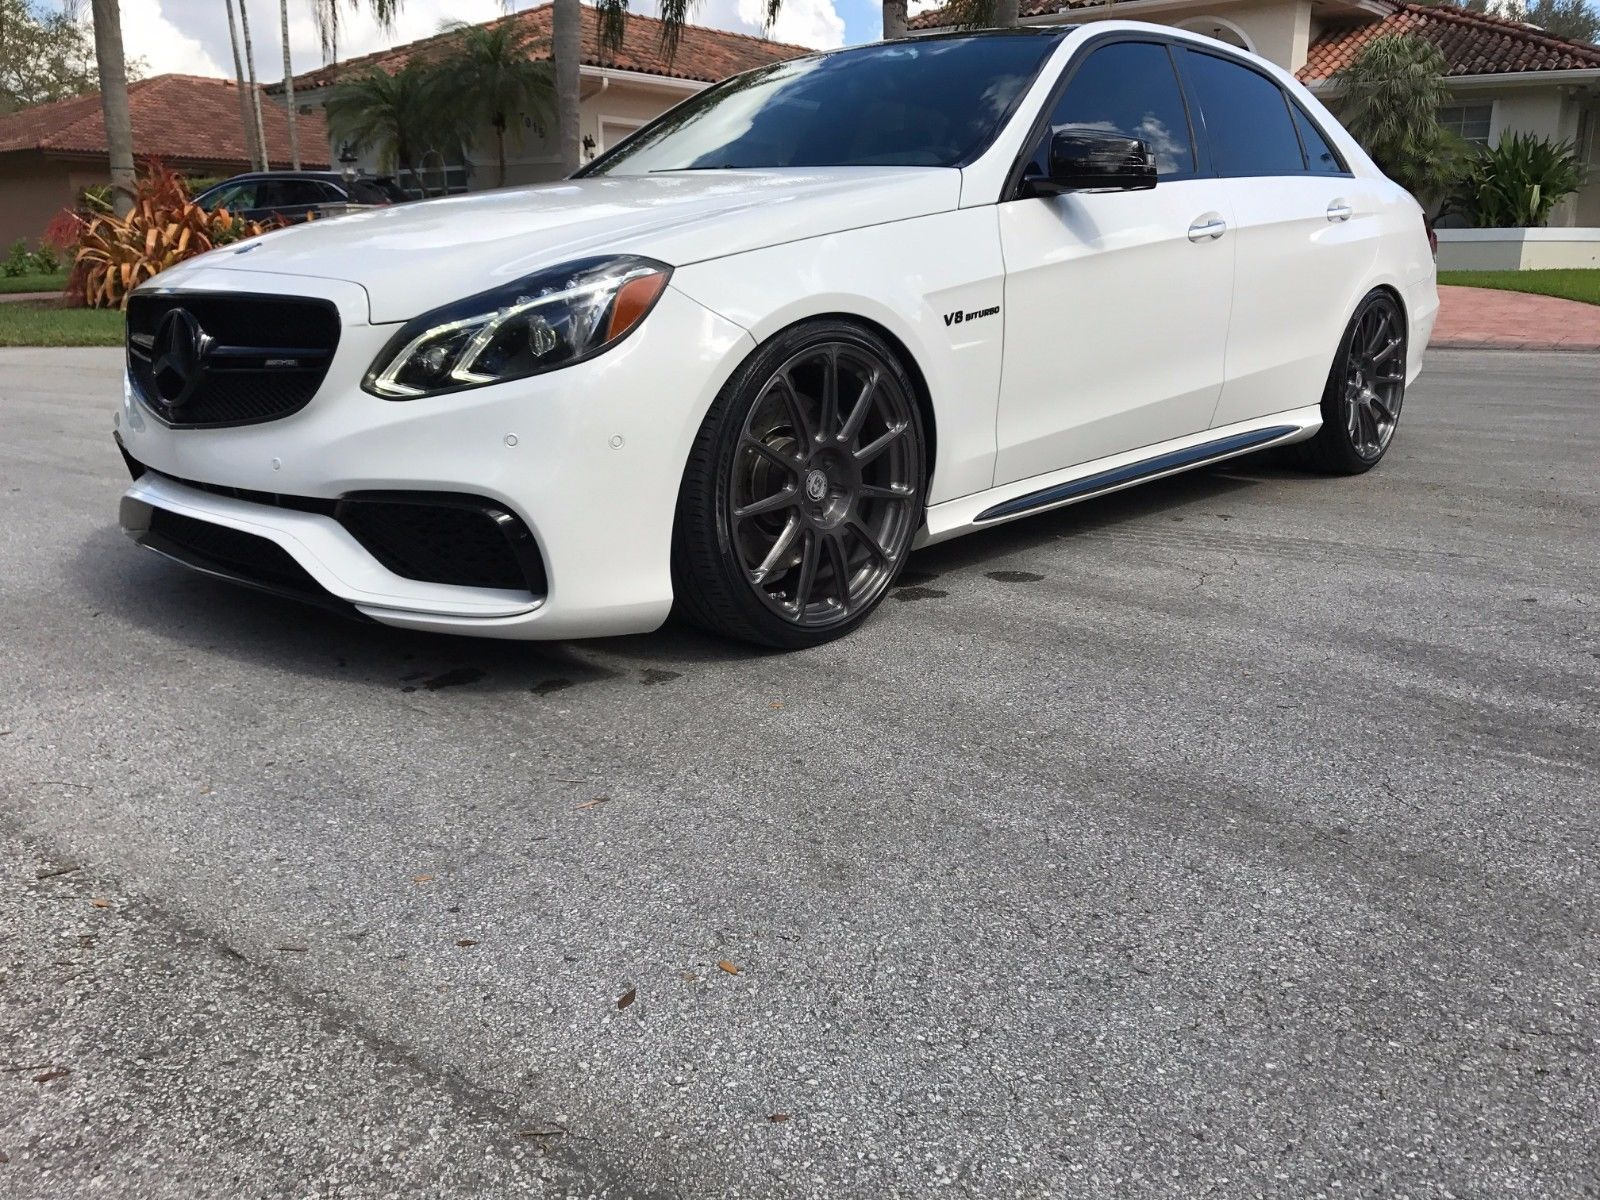 2014 mercedes benz w212 e63 amg on hre p43sc wheels benztuning. Black Bedroom Furniture Sets. Home Design Ideas